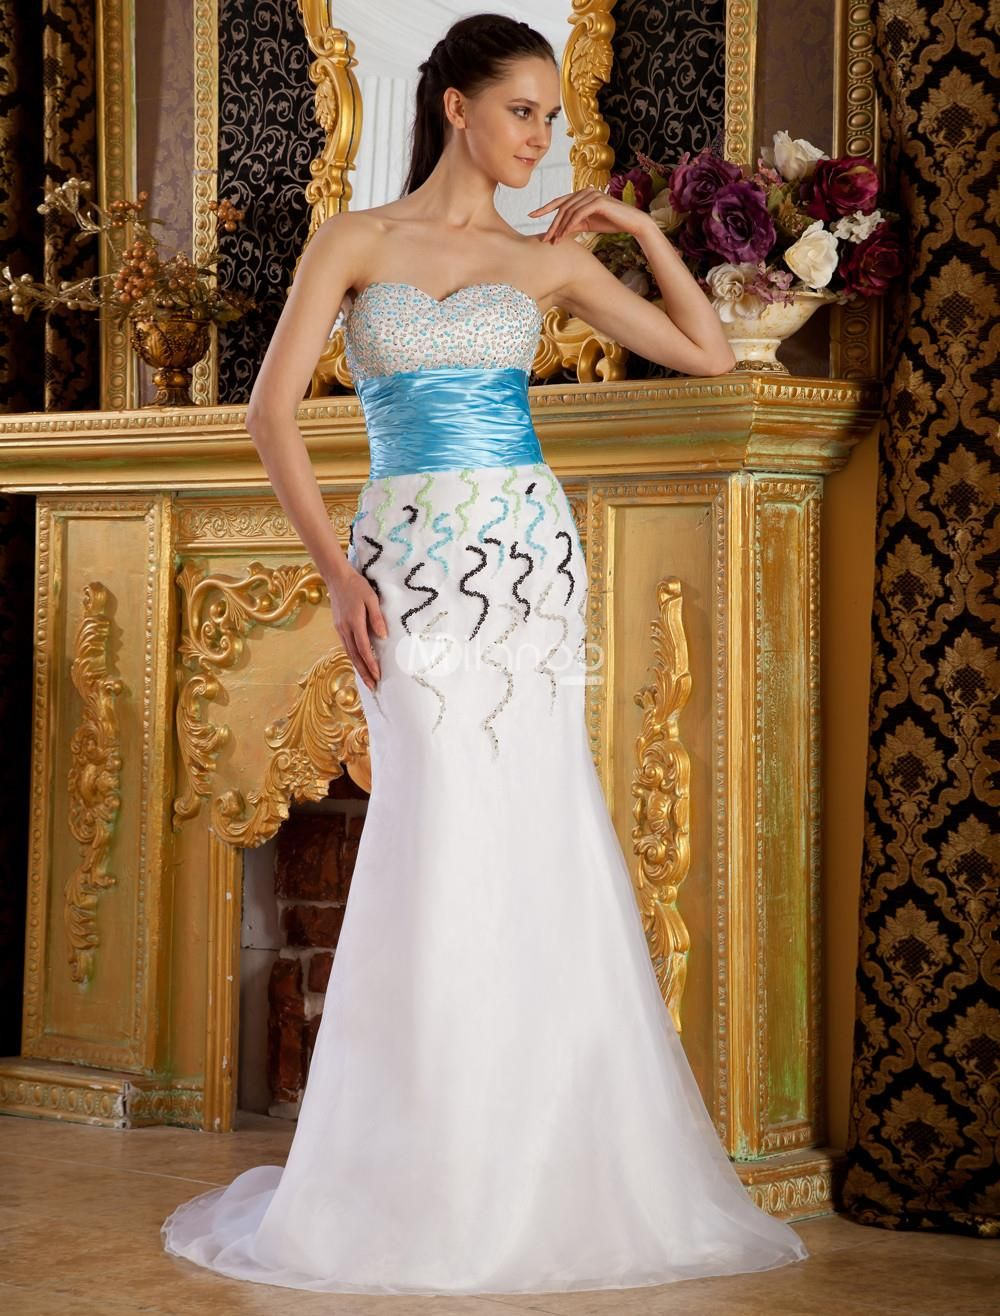 A-line White Net Paillette Decoration Sweetheart Prom Dress. Blue white gradient color brings you romantic feeling. Strapless sweetheart design in a-line silhouette catches everyones eyes. Wrapped waistline and paillette decoration are excellent for adding the glamorous statues.P.. . See More A-line at http://www.ourgreatshop.com/A-line-C938.aspx